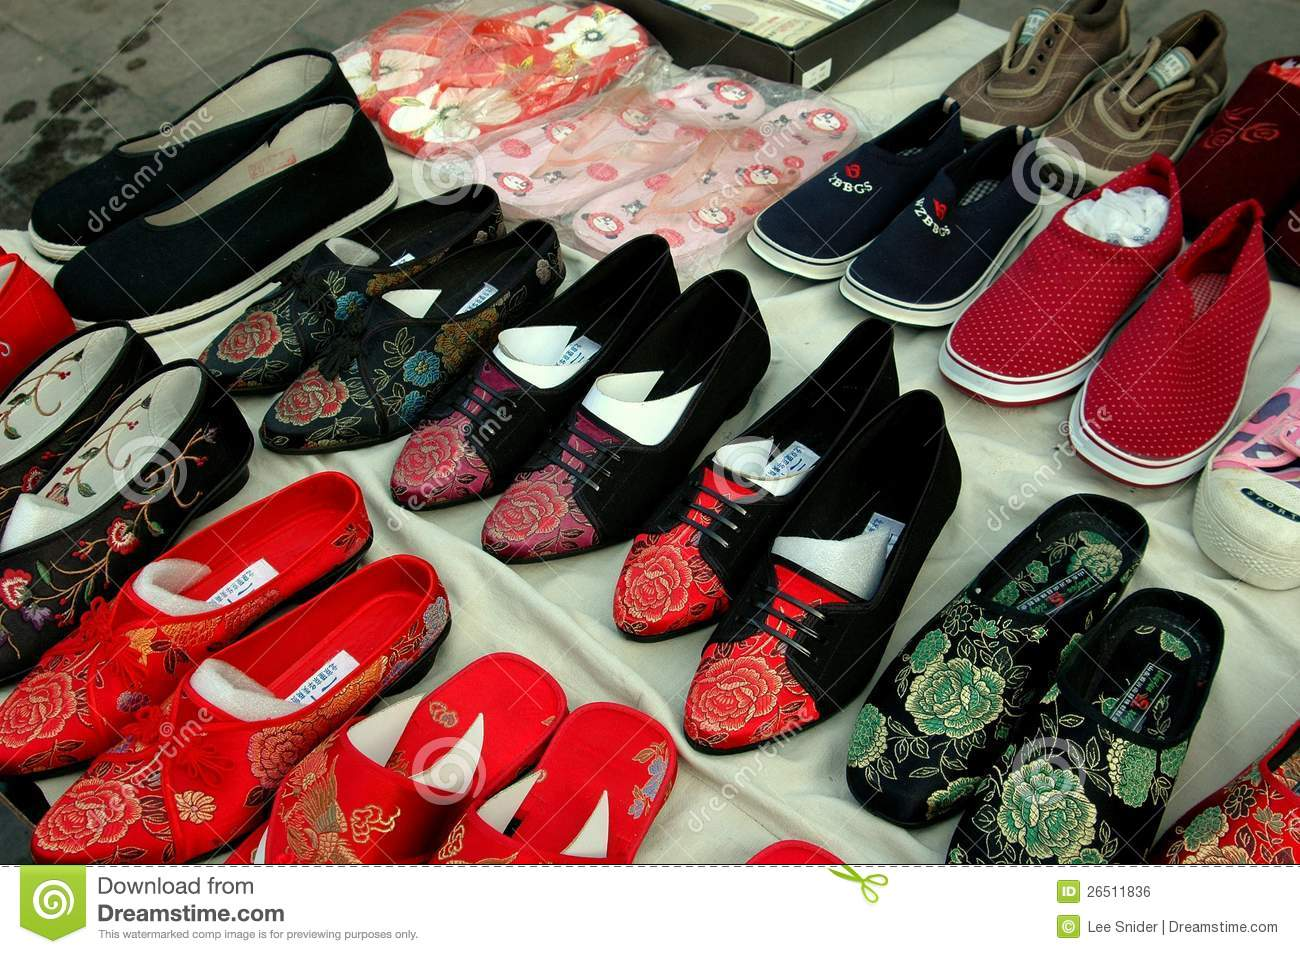 CHINESE SHOES-The practice of feet binding outlawed in 1911 | by scotlanduk